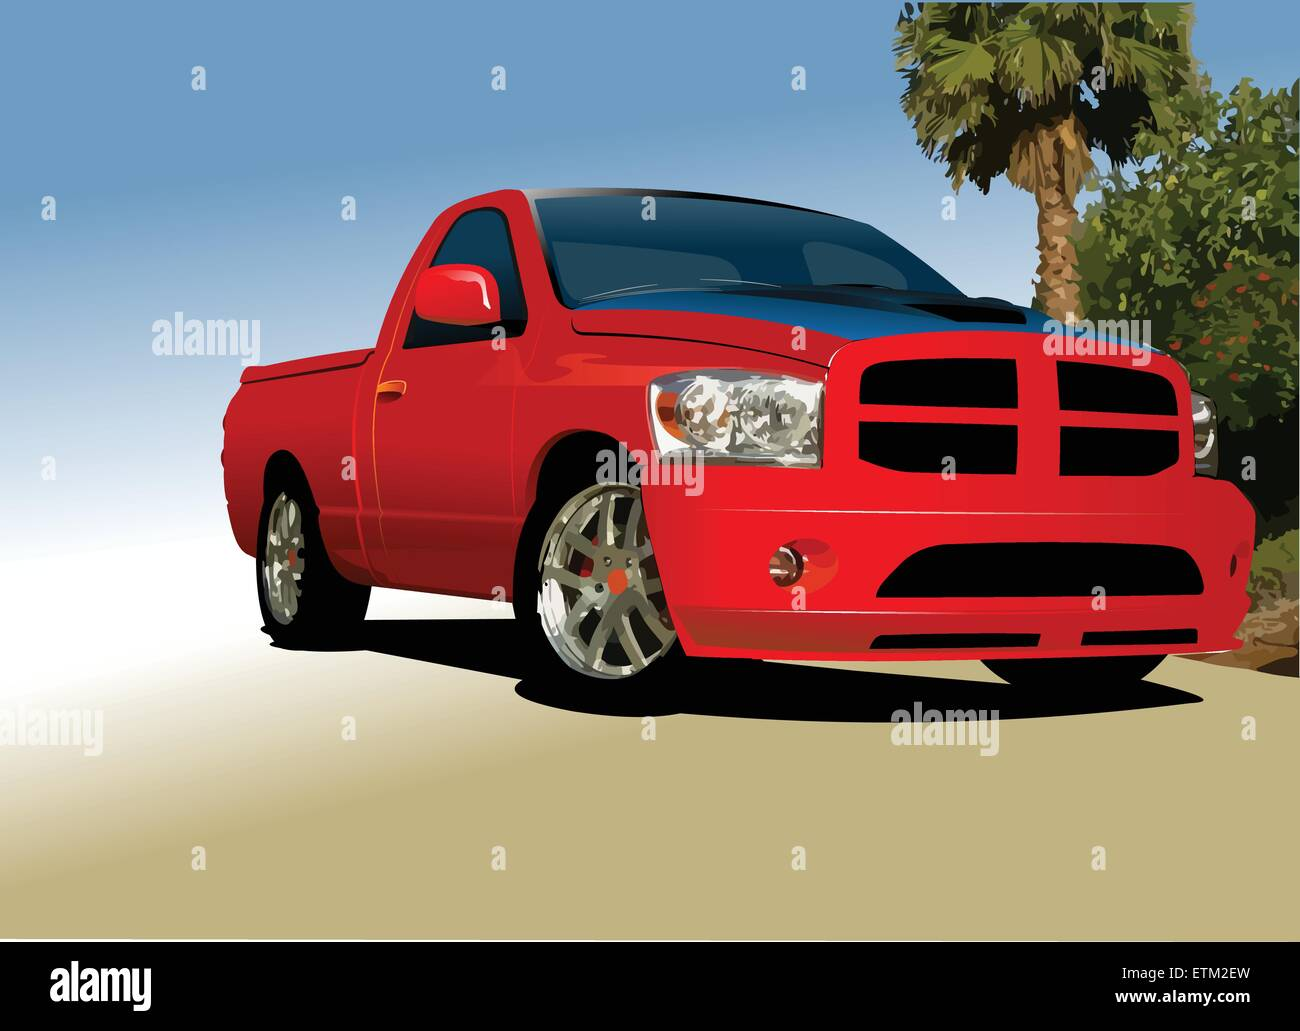 Red small truck on the road. Vector illustration - Stock Vector